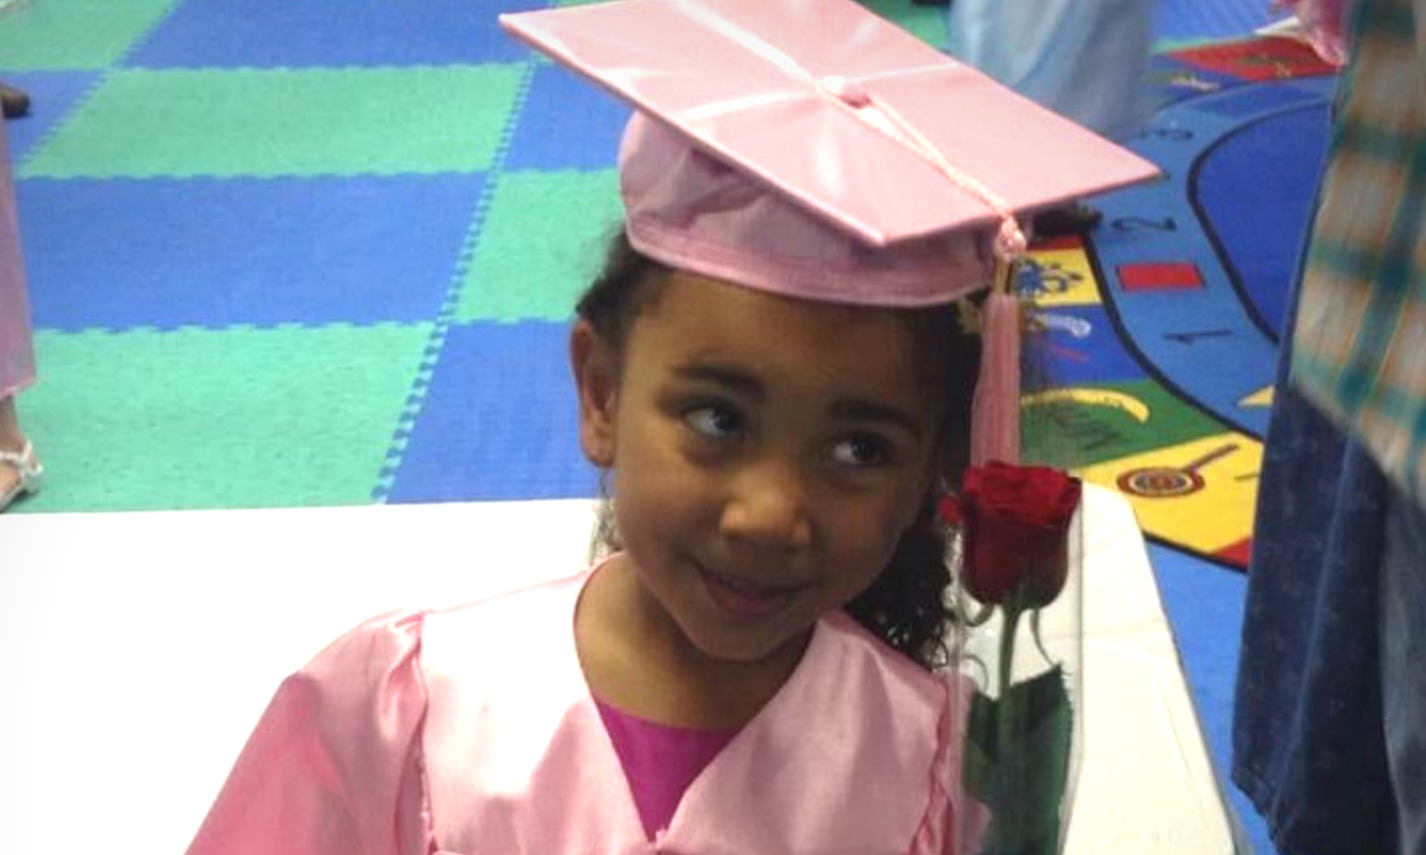 young student in pink graduation cap and gown